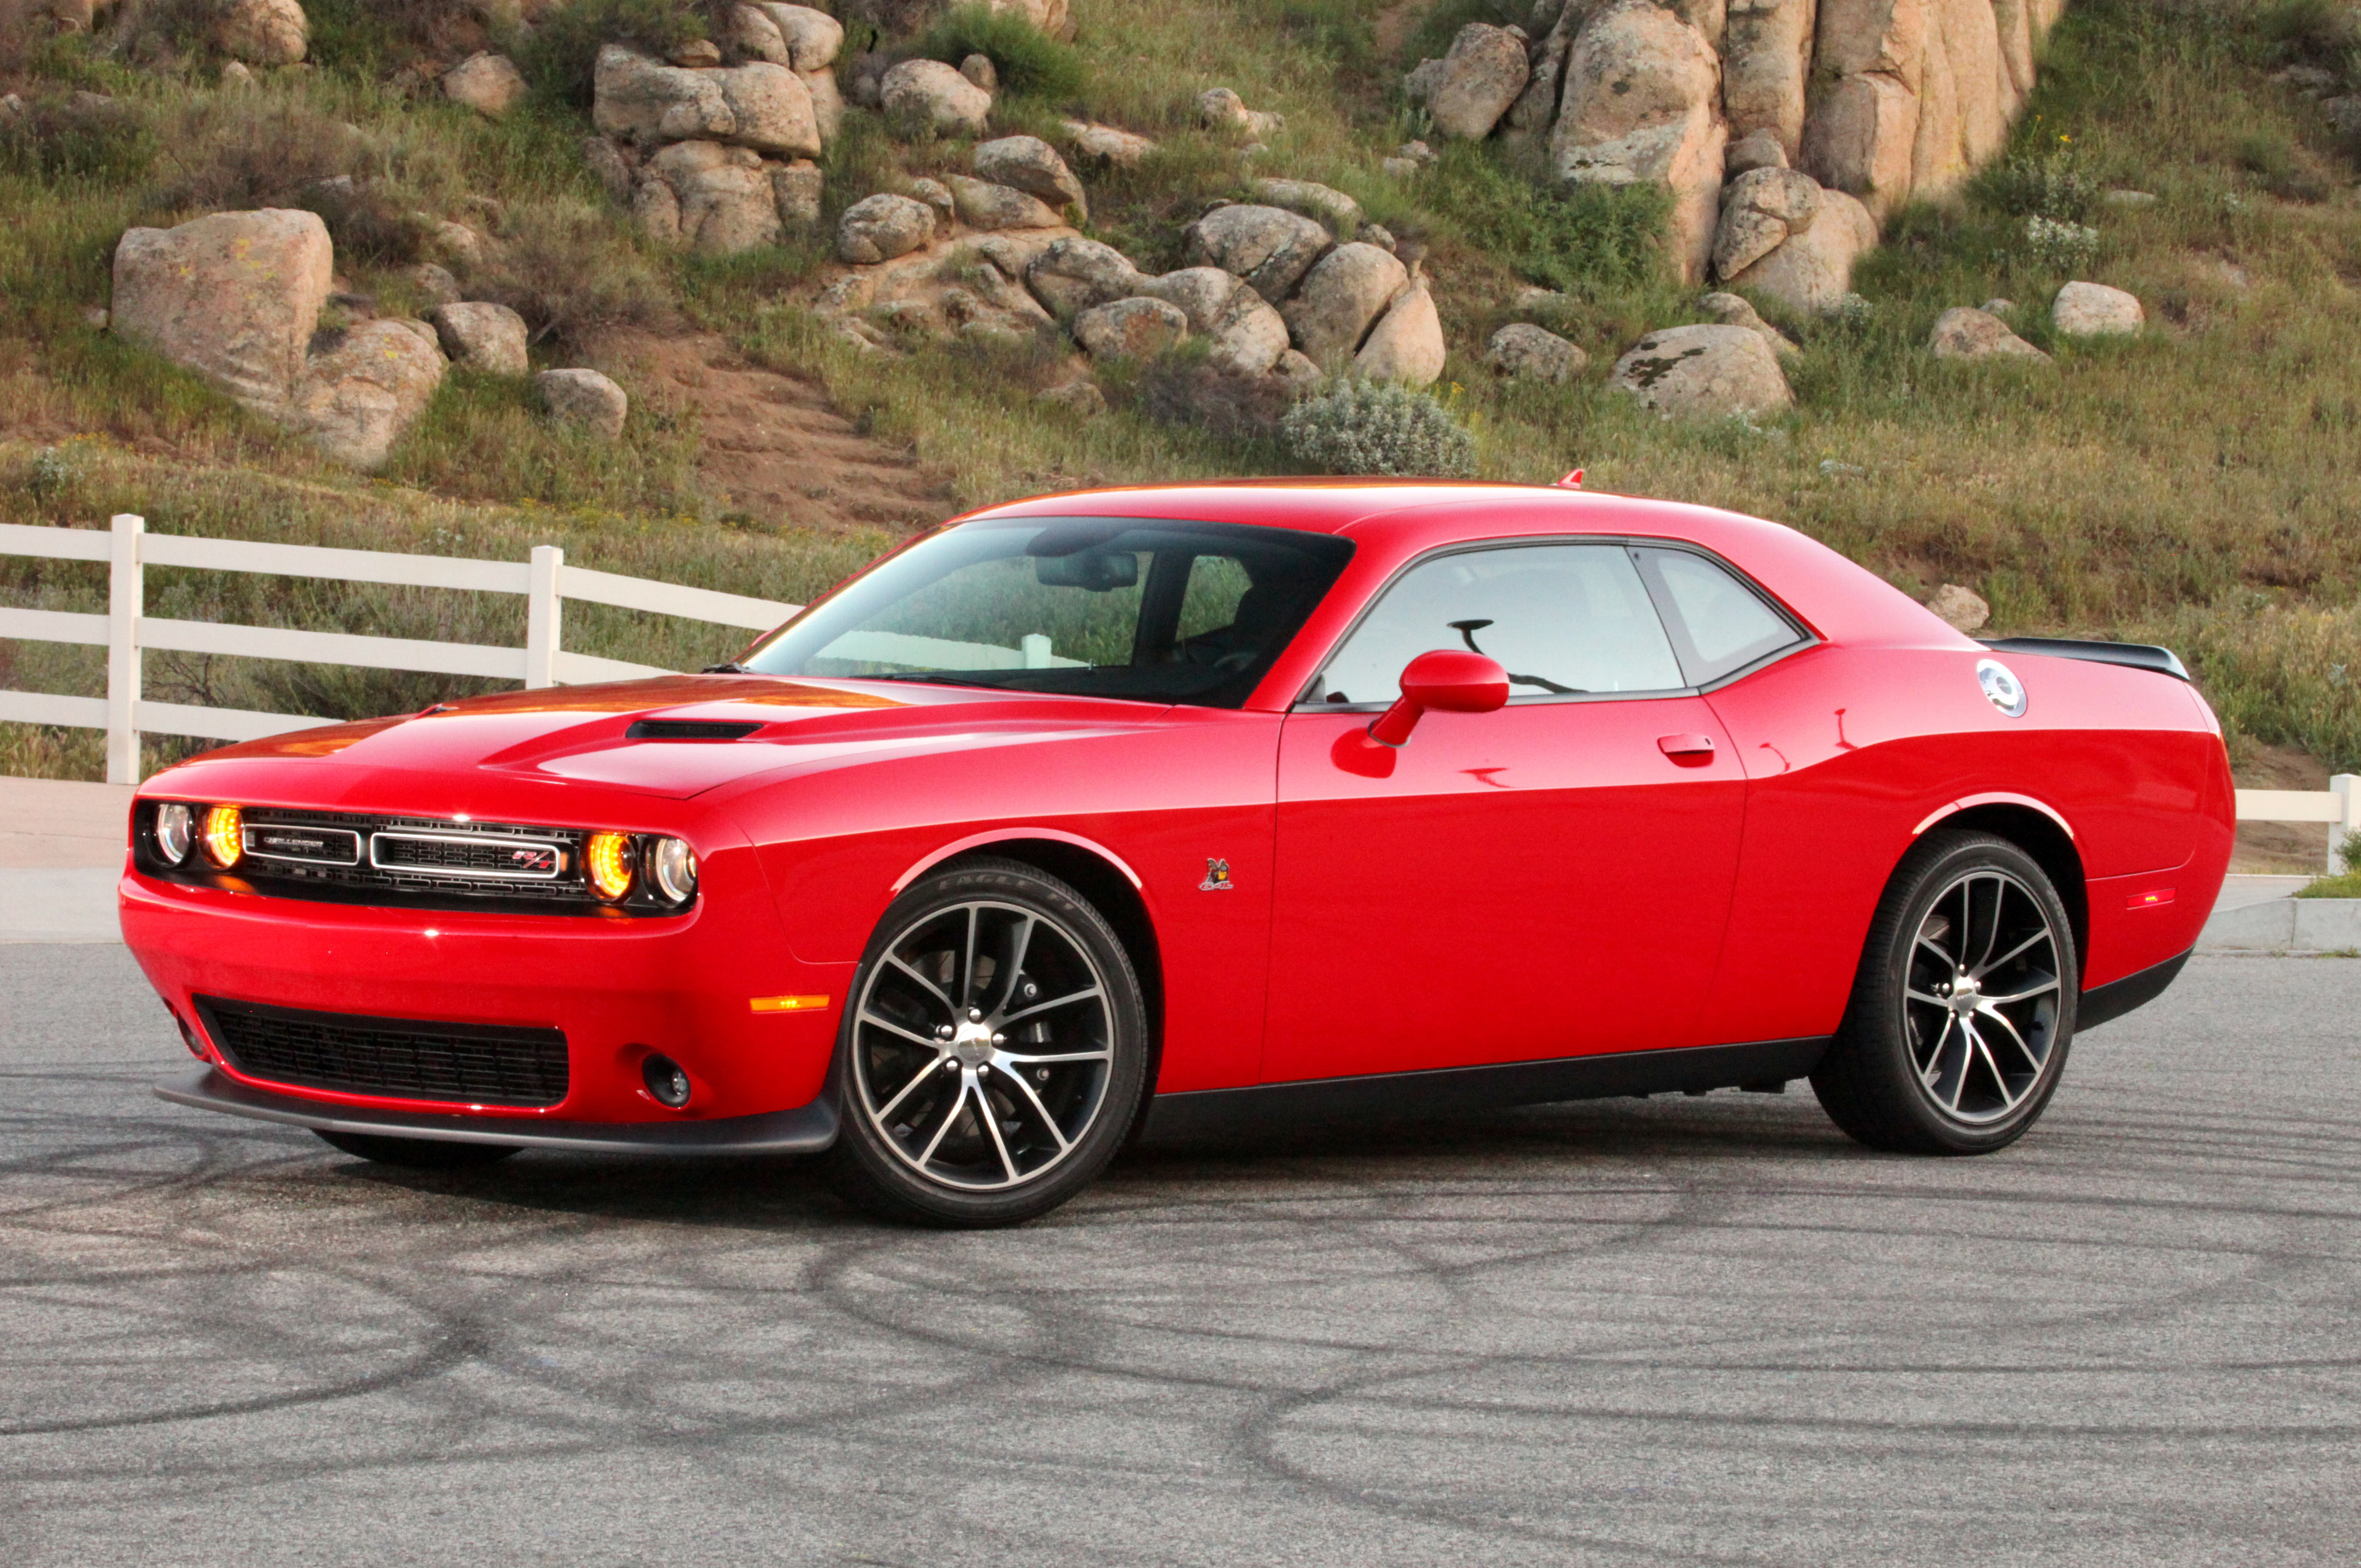 The '15 Dodge Scat Pack Challenger is the best performance bang-for-the-buck going, with 485hp from an SRT-sourced 392ci Hemi, upgraded suspension and brakes, unique Scat Pack styling, and a price under $40k.